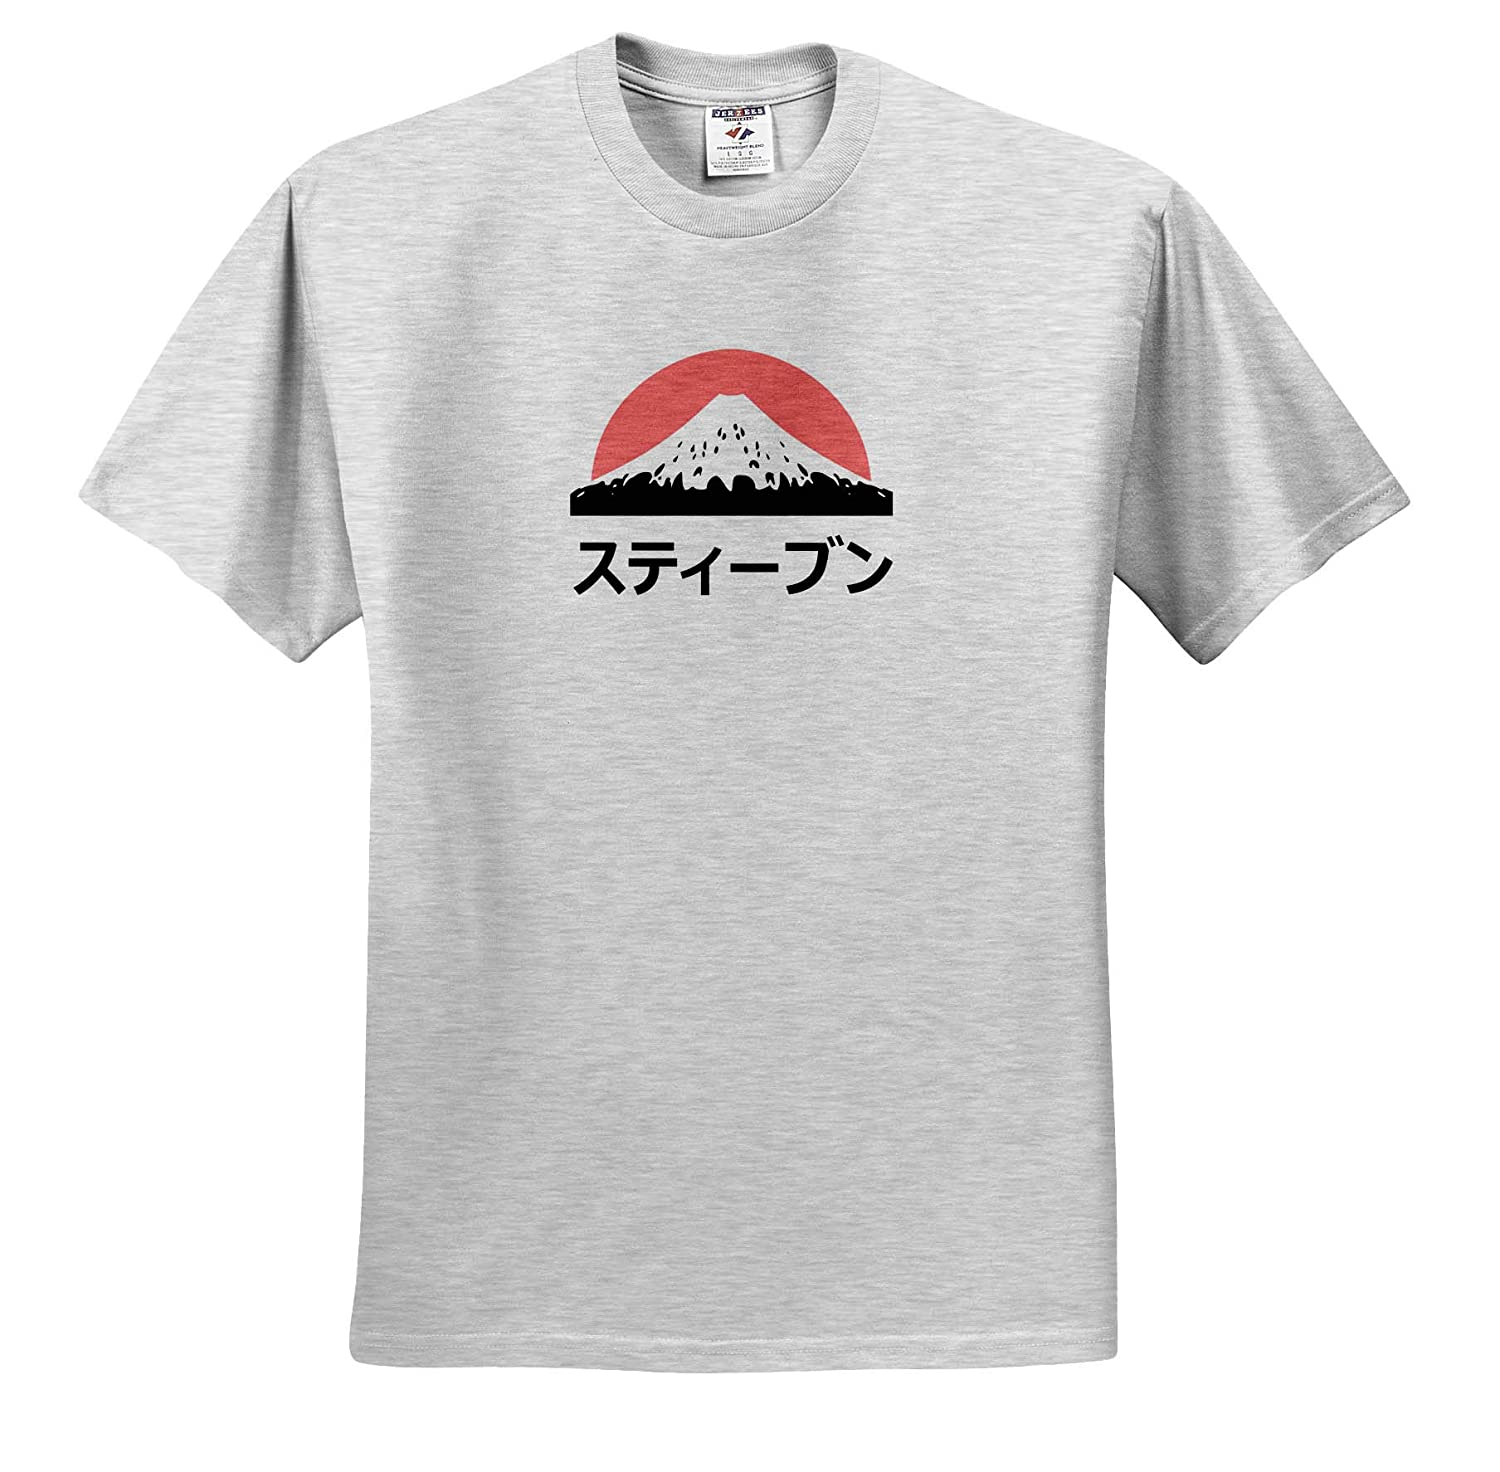 3dRose InspirationzStore Steven or Stephen in Japanese Letters Name in Japanese Adult T-Shirt XL ts/_320630